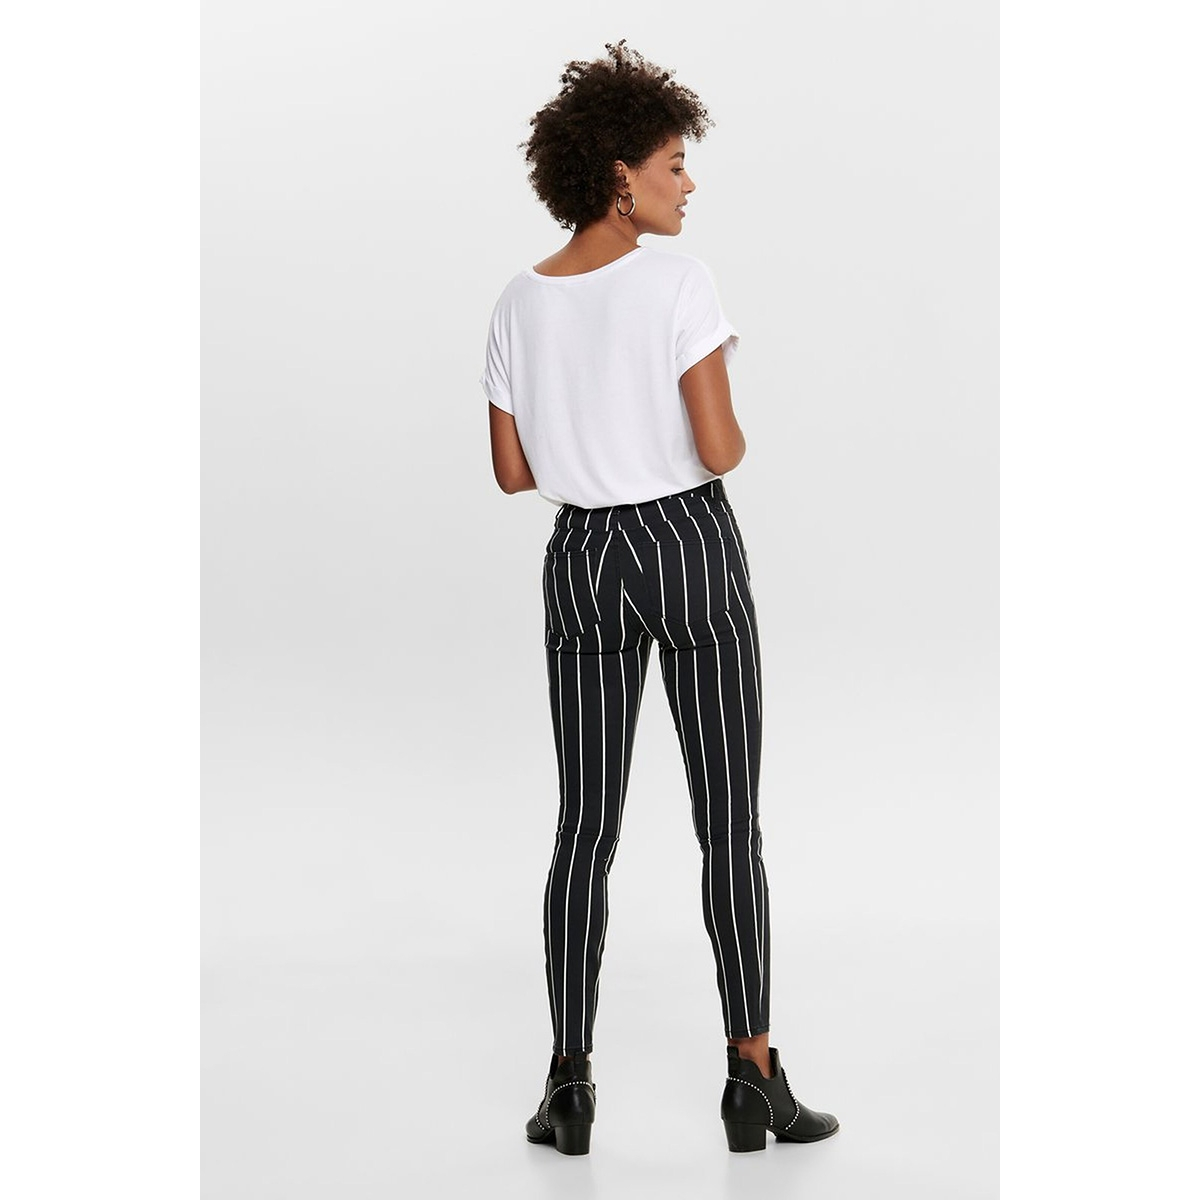 onlnine-ester life mw ank pants cc 15191442 only broek black/cloud dancer